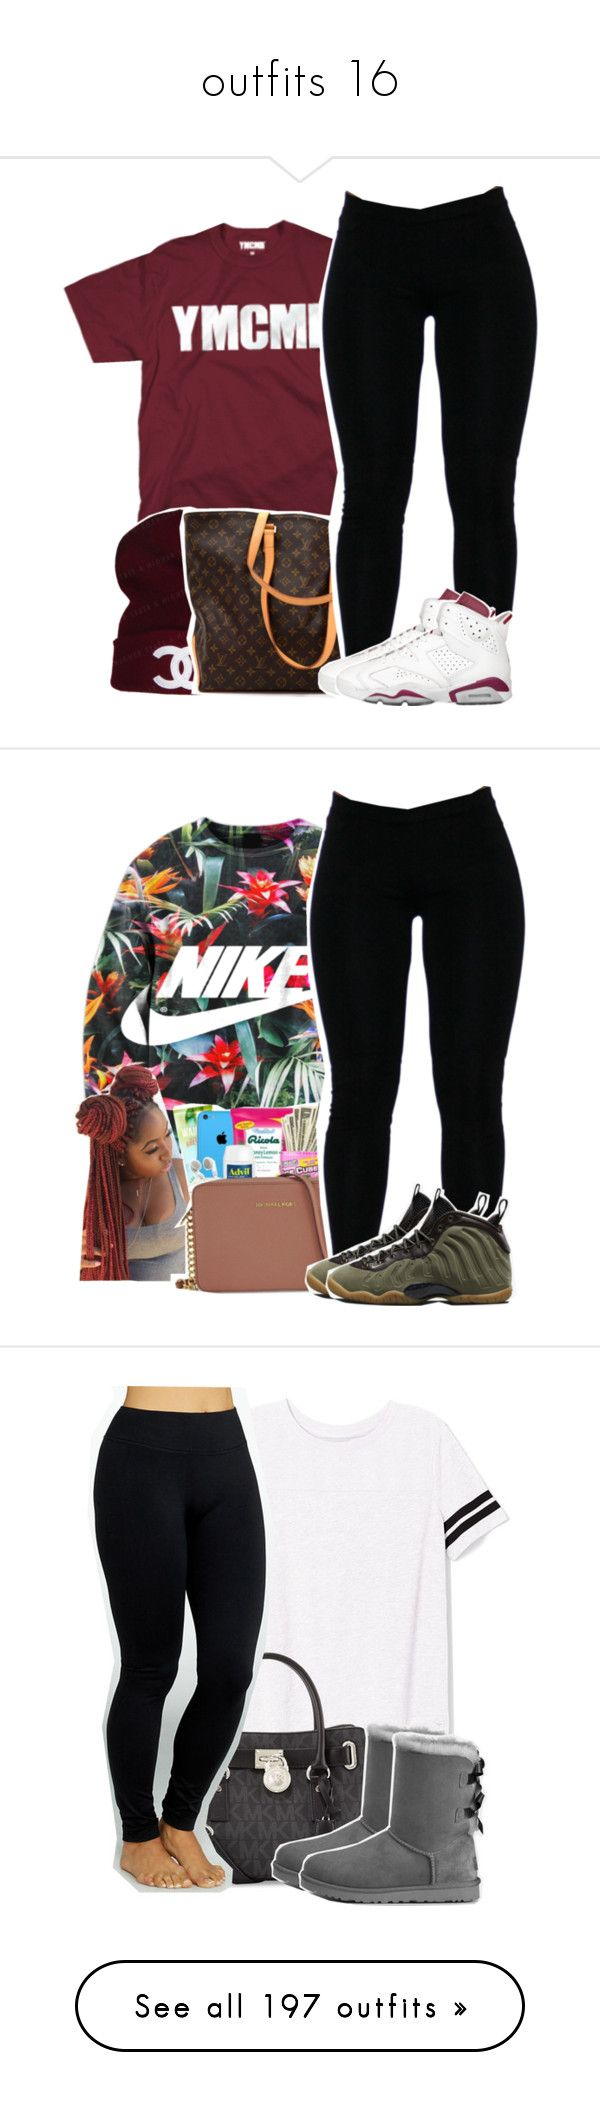 """outfits 16"" by jazzyjada99 ❤ liked on Polyvore featuring CC, Louis Vuitton, NIKE, Victoria's Secret PINK, MICHAEL Michael Kors, Yummie by Heather Thomson, UGG Australia, Topshop, Case-Mate and BP."